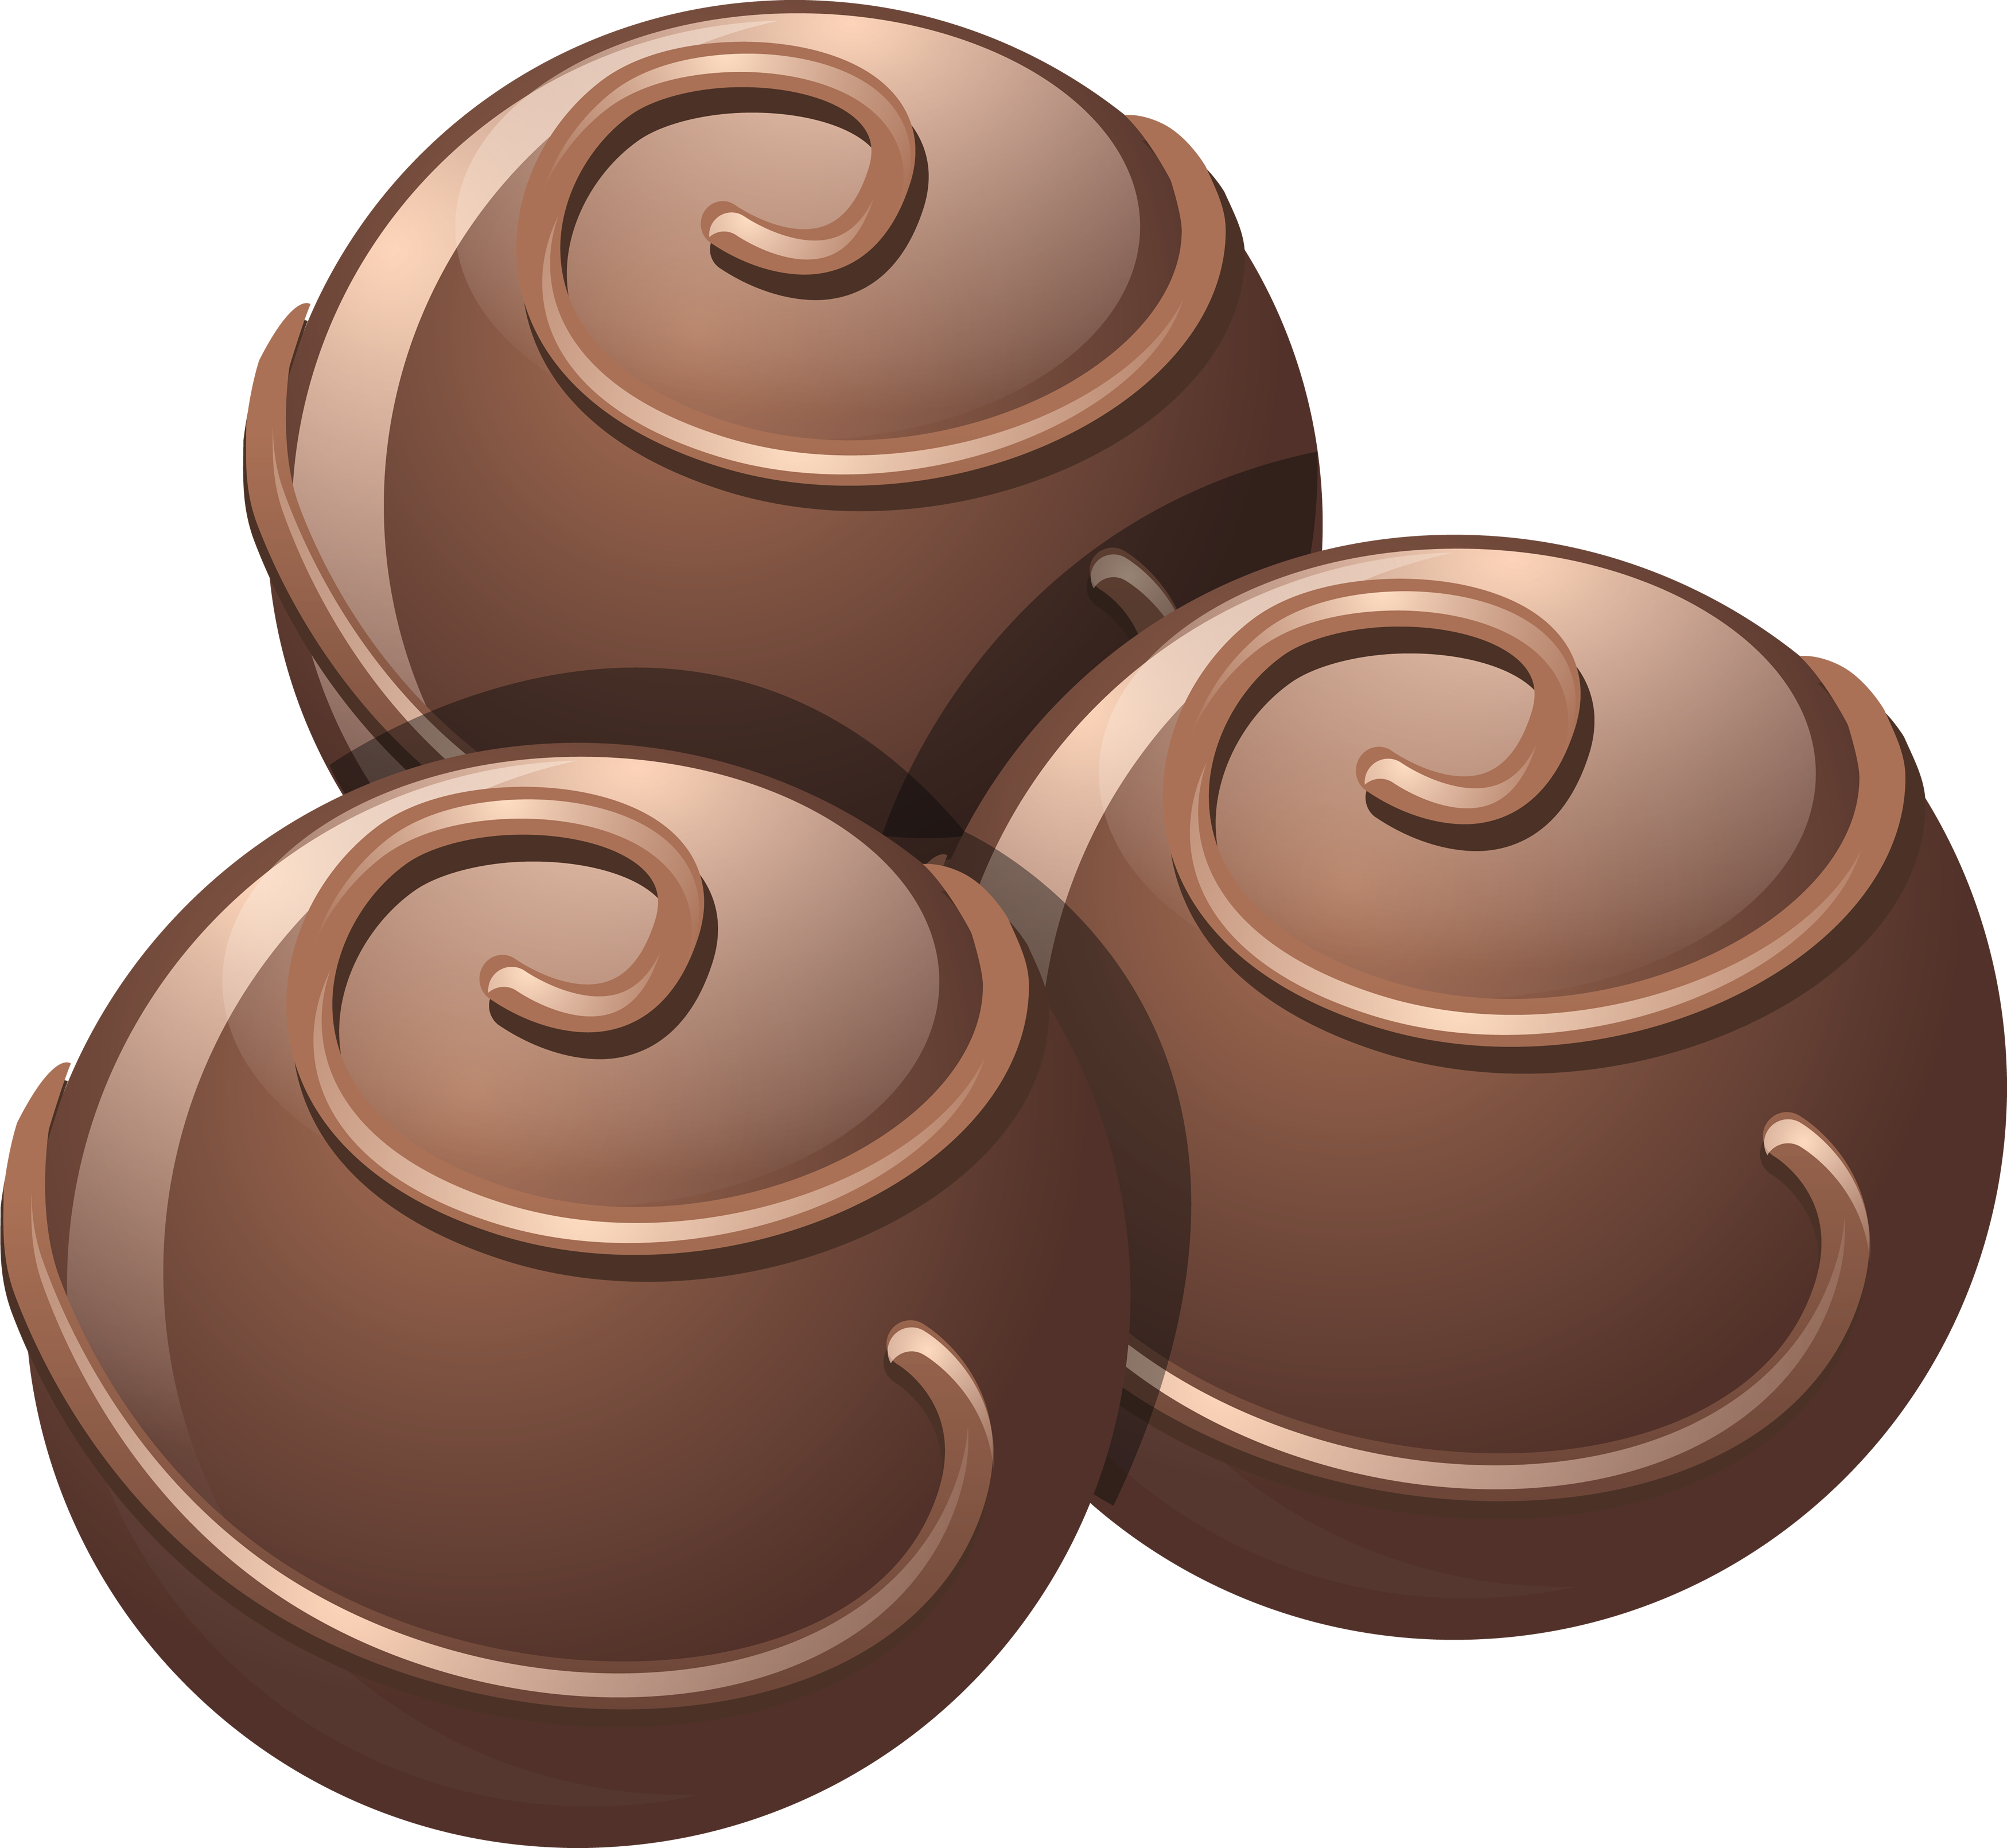 Eggs clipart chocolate. Png images free pictures